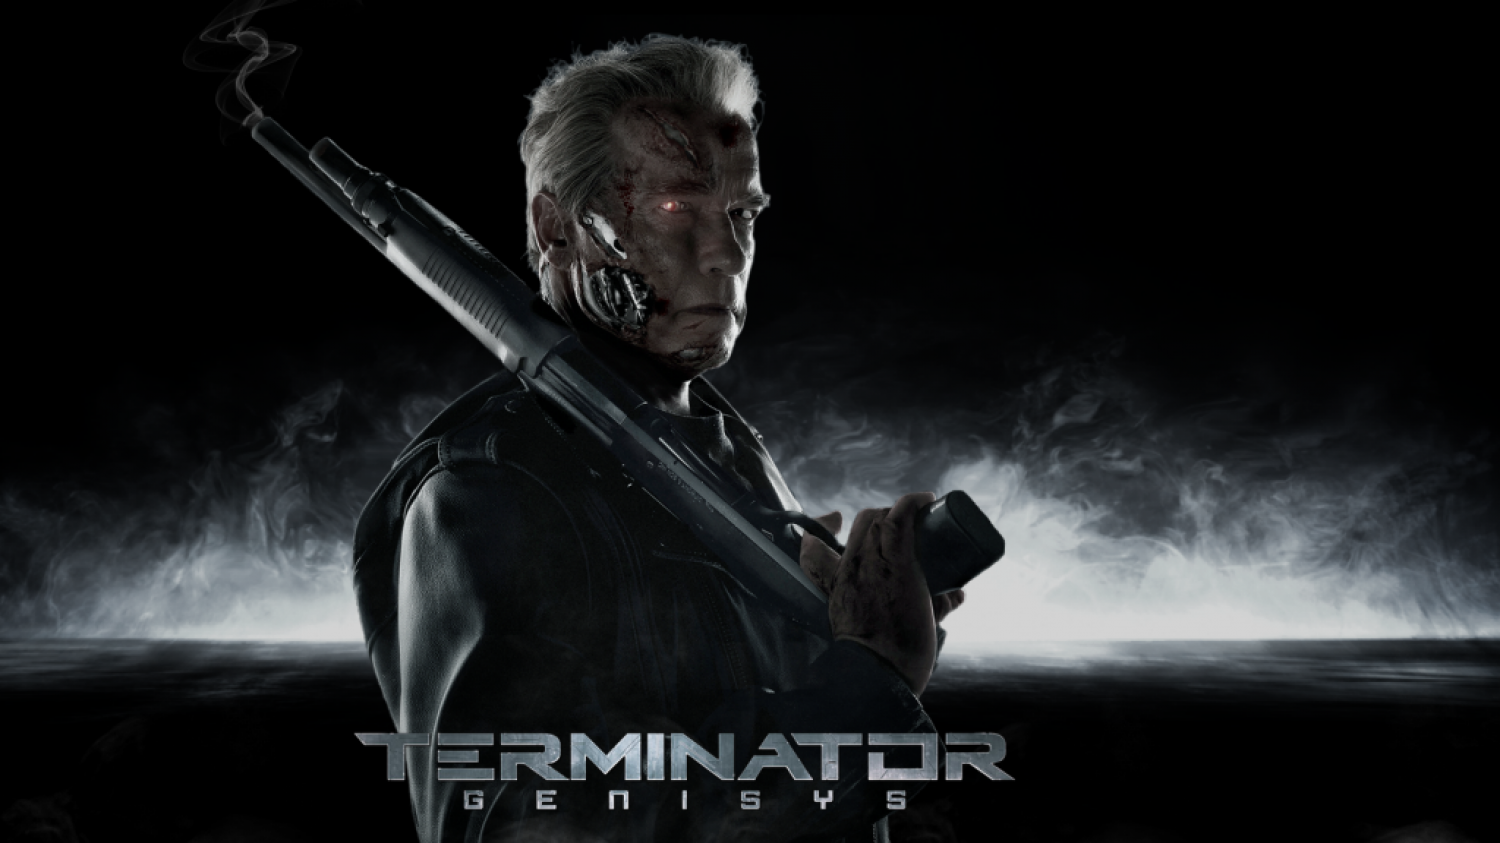 Terminator Genisys (2015) by Alan Taylor - Movie Review